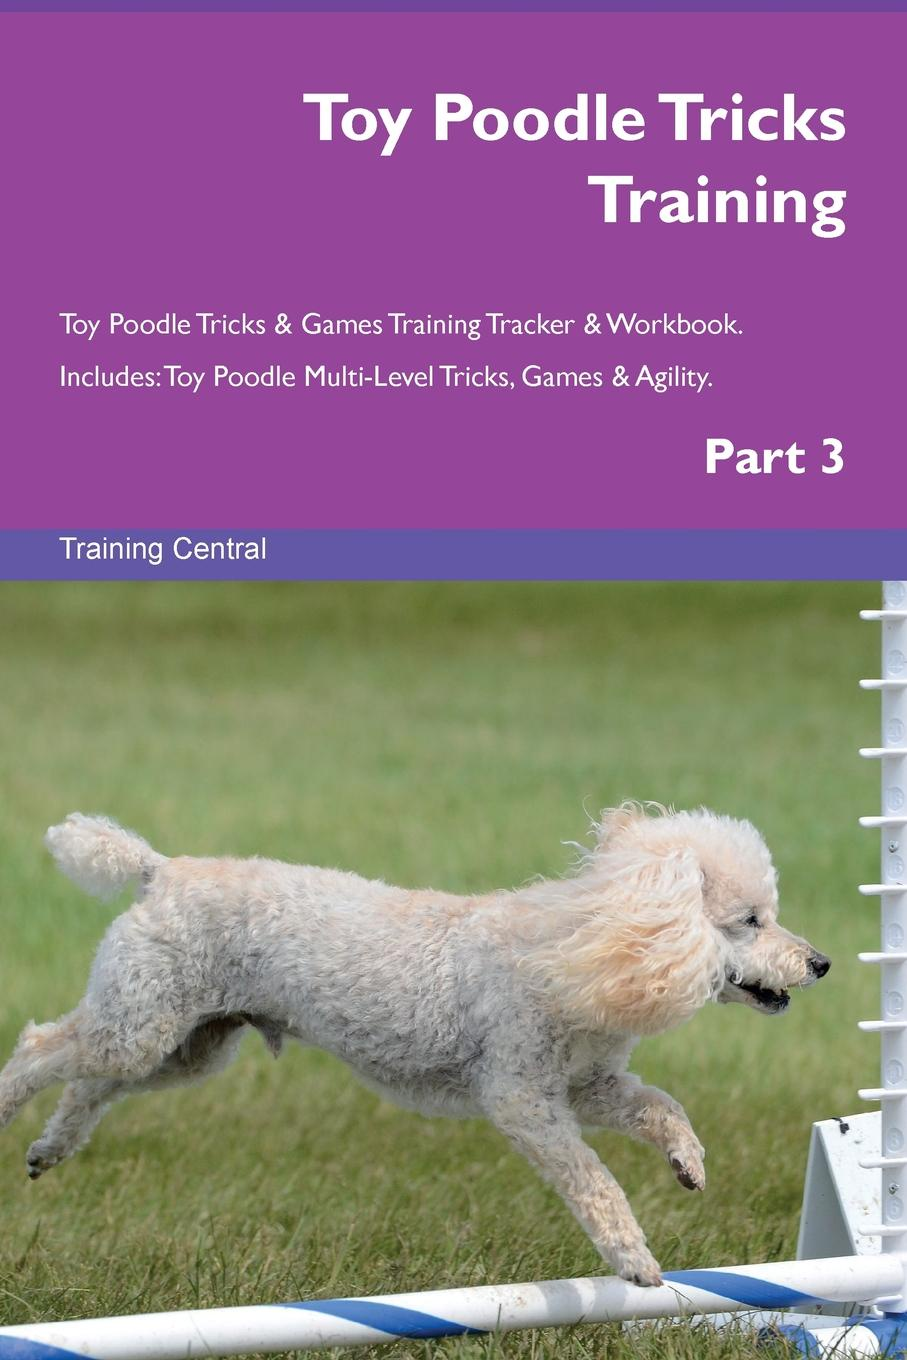 Training Central Toy Poodle Tricks Training Toy Poodle Tricks . Games Training Tracker . Workbook. Includes. Toy Poodle Multi-Level Tricks, Games . Agility. Part 3 candice guo plush toy stuffed doll cute verisimilitude poodle cute teddy dog puppy soft creative birthday gift christmas present